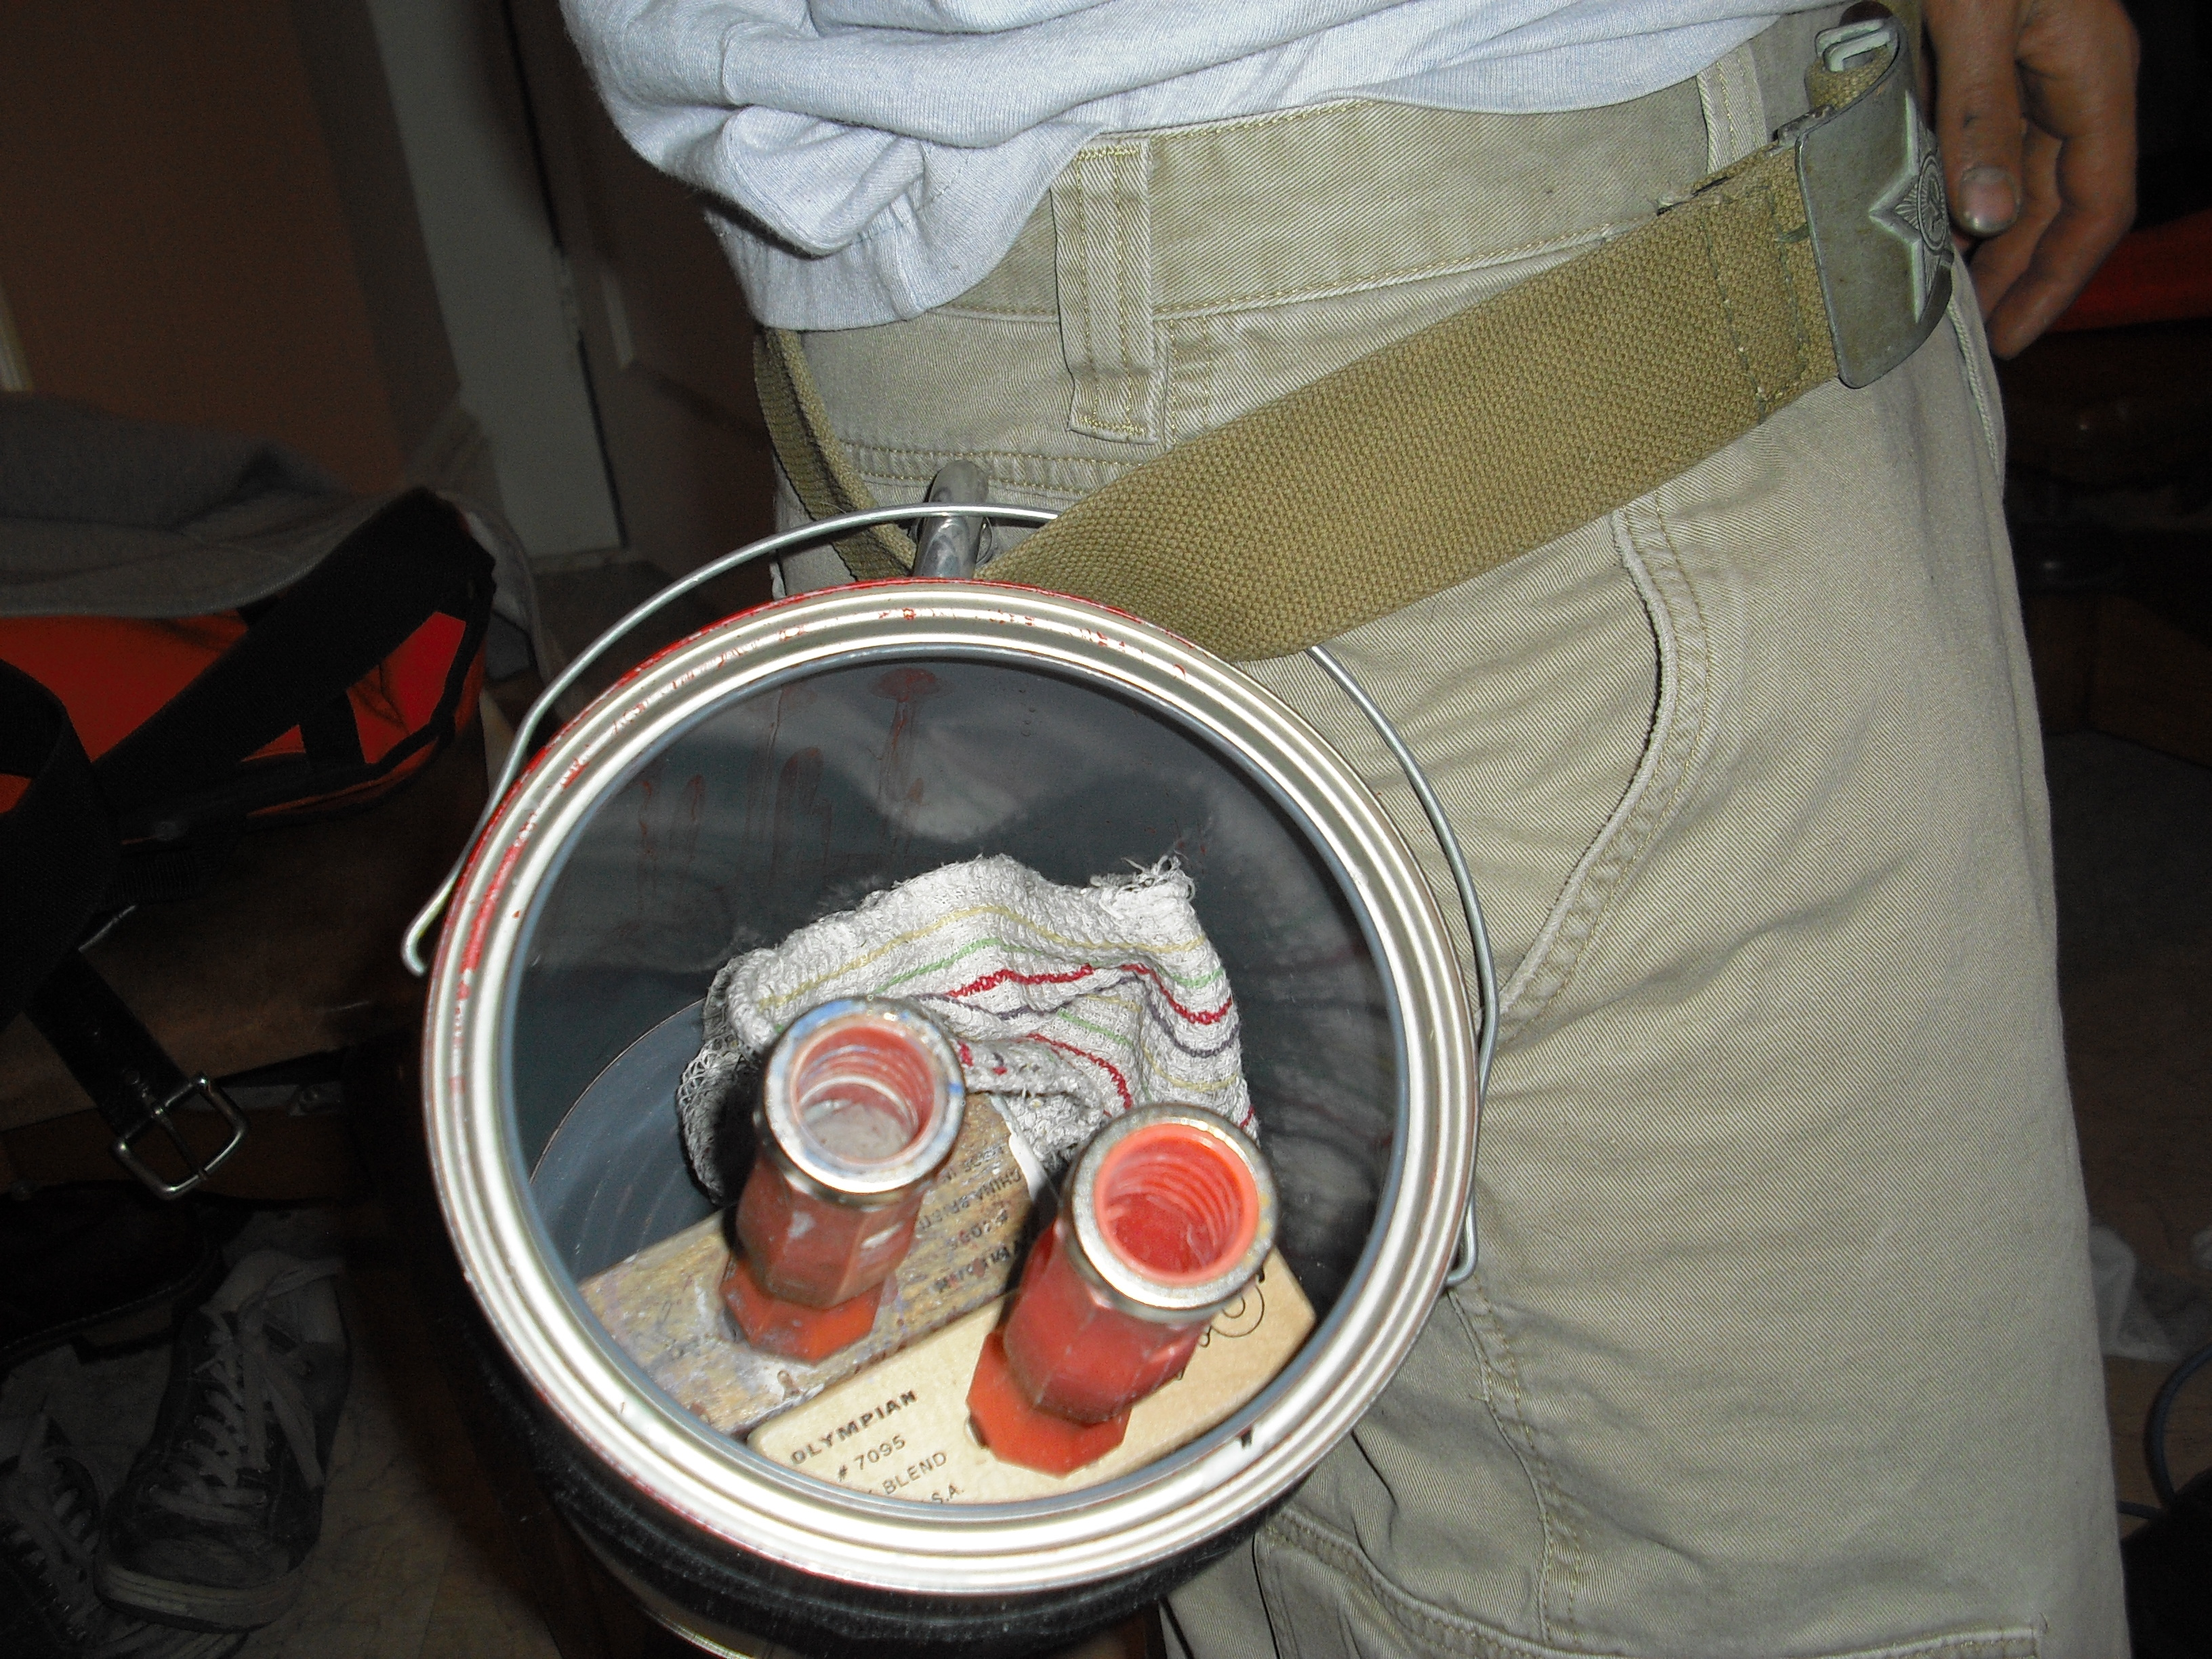 Paint Can Pocket: The Dumbest Fashion Statement